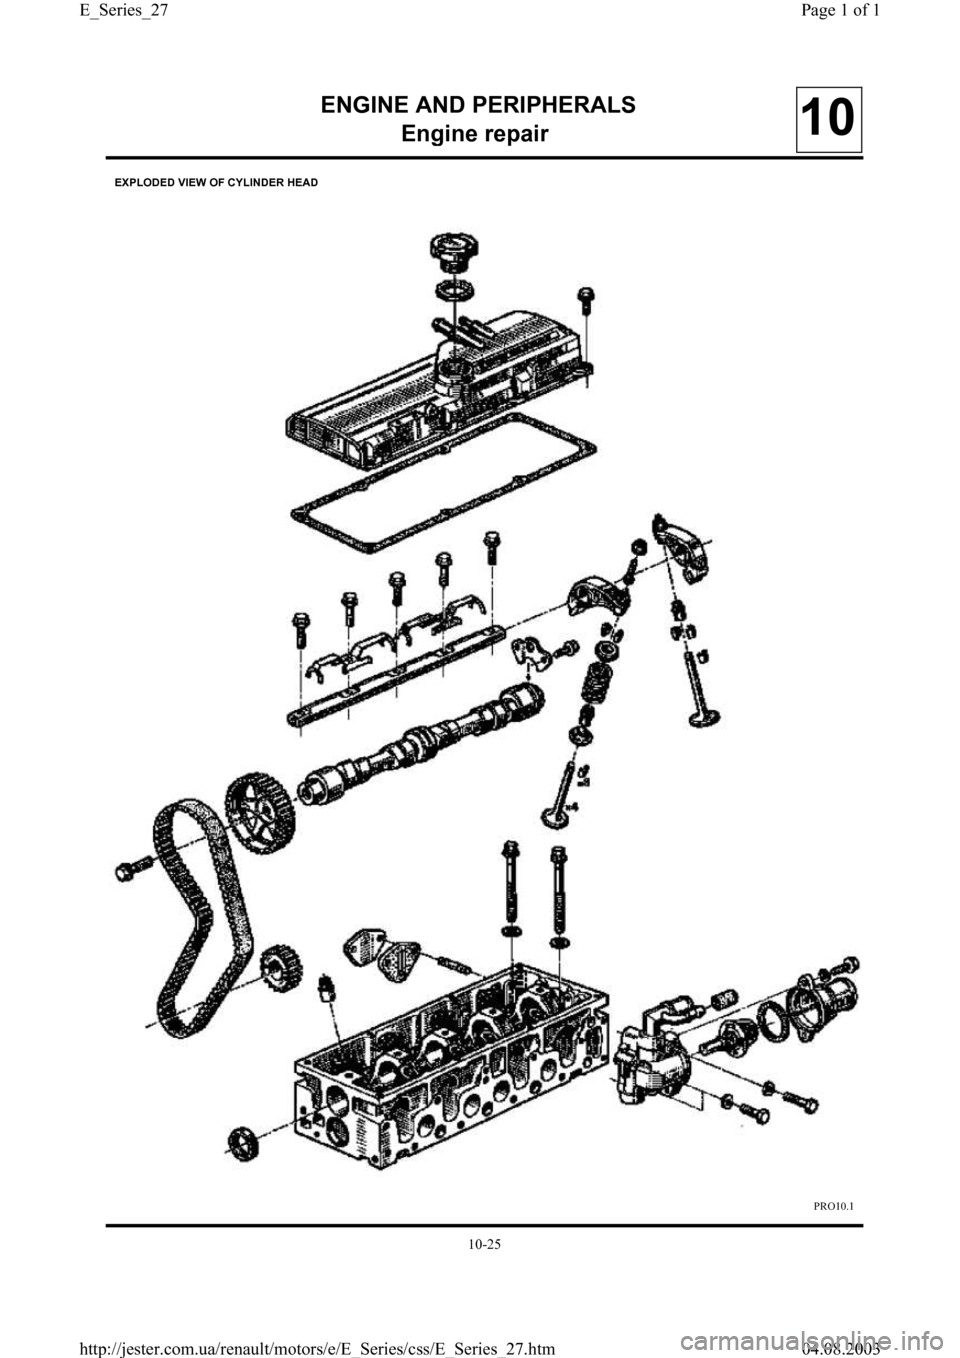 RENAULT CLIO 1997 X57 / 1.G Petrol Engines Workshop Manual, Page 27